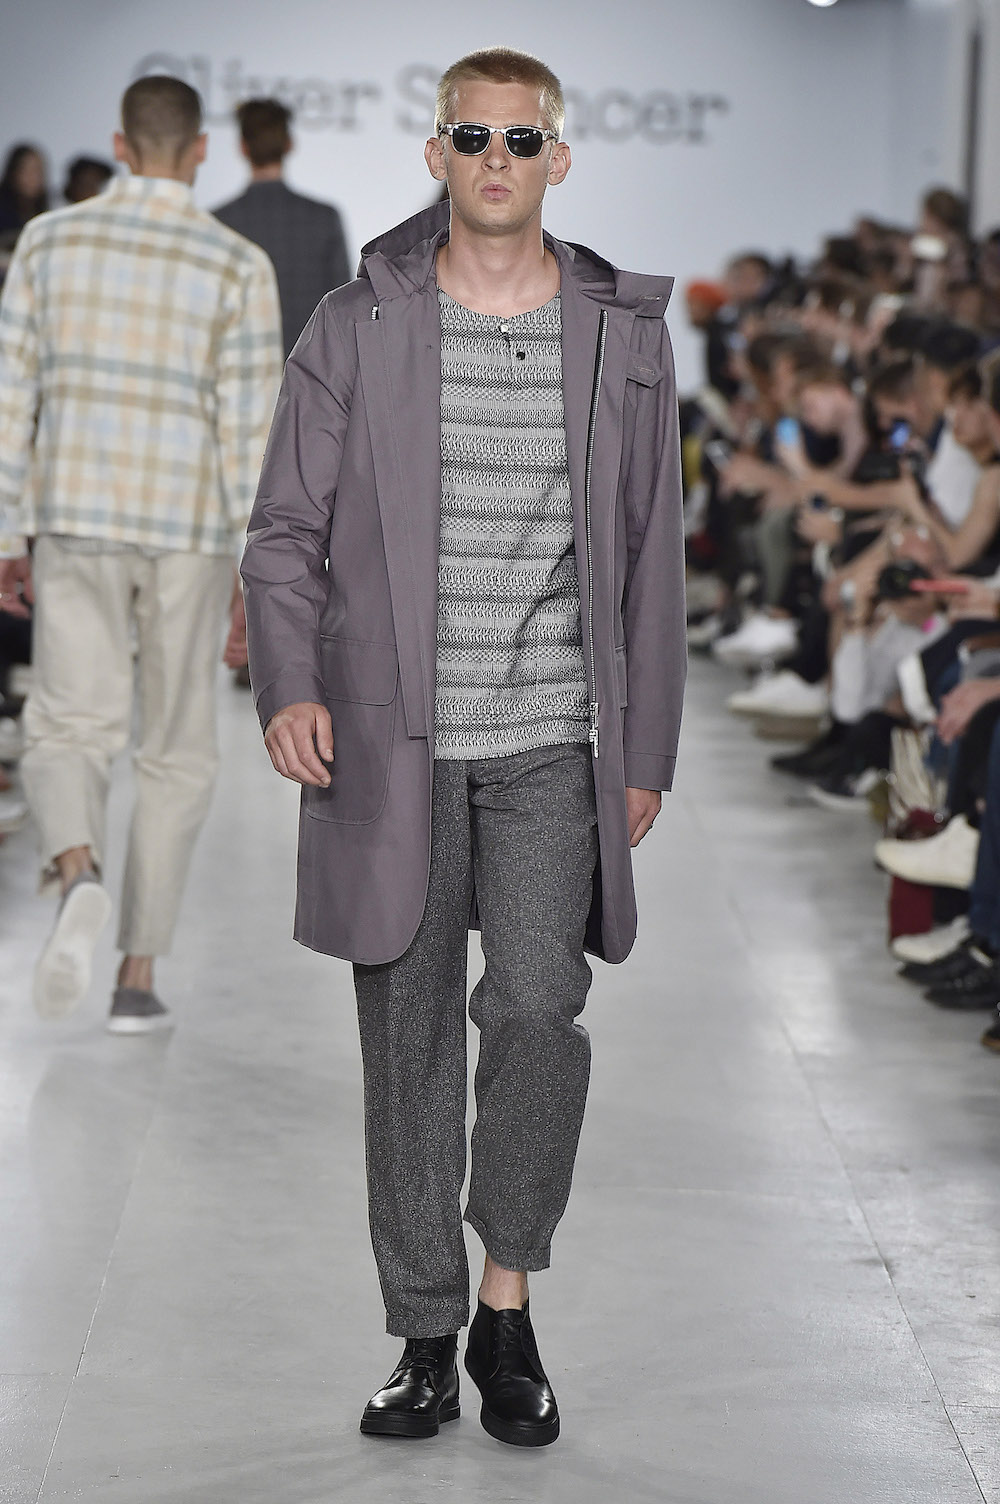 Défilé Oliver Spencer printemps-été 2017, Fashion Week Homme - Londres